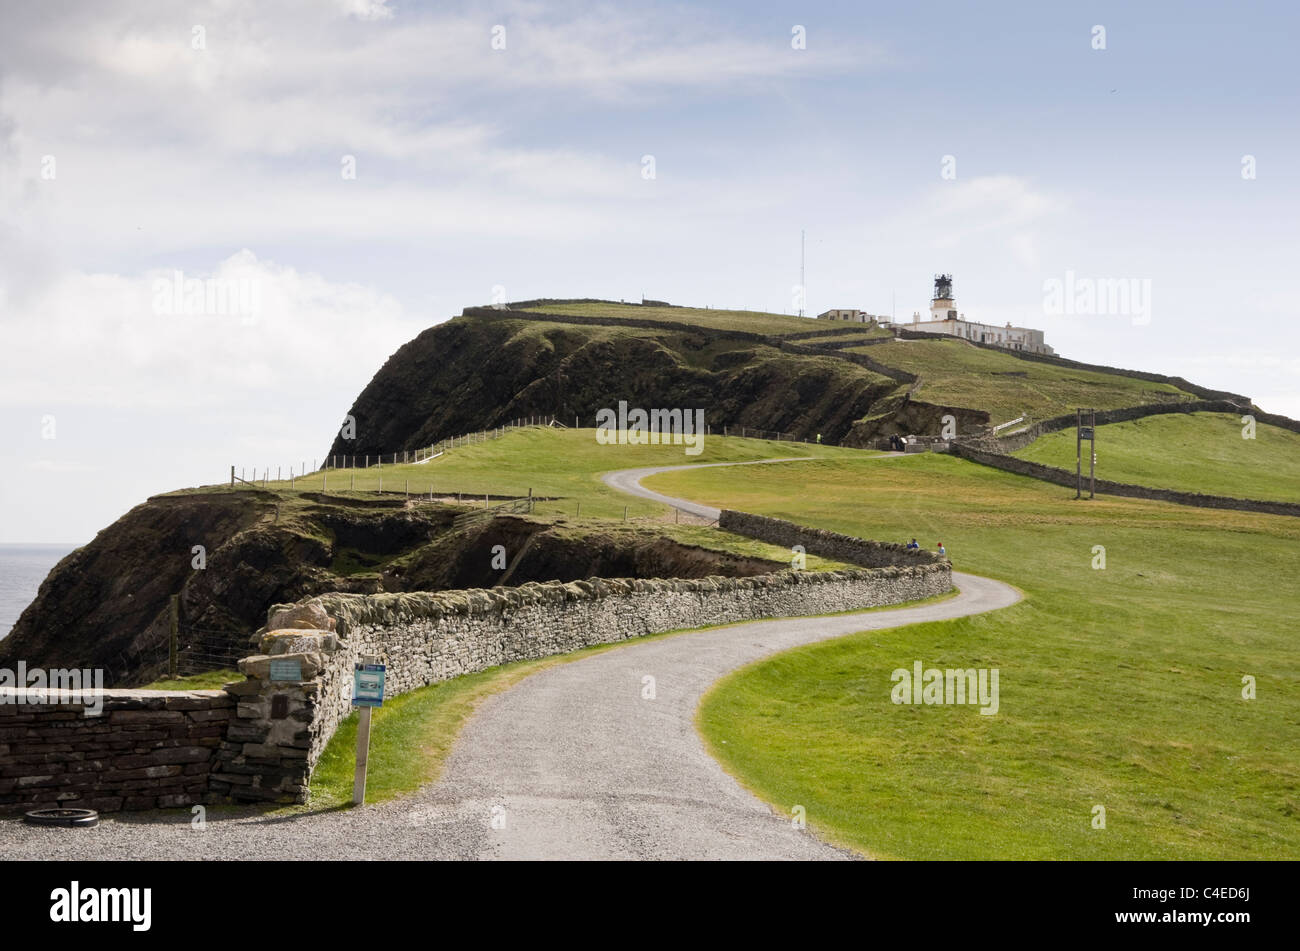 Sumburgh Head, Shetland Islands, Scotland, UK. View to RSPB nature reserve for seabirds breeding on seacliffs with - Stock Image